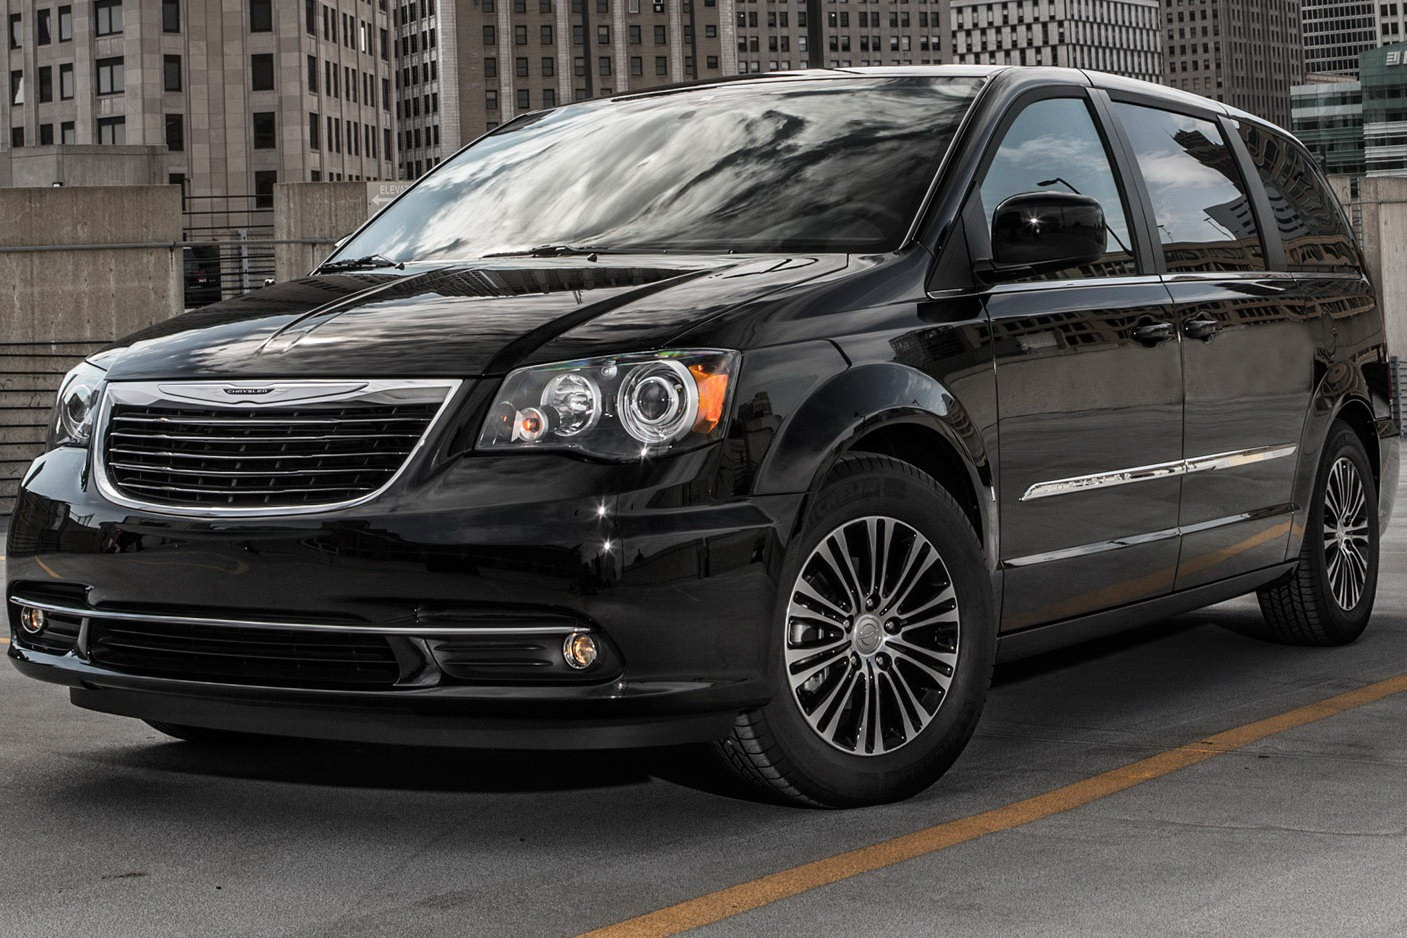 2019 Chrysler Town and Country photo - 5